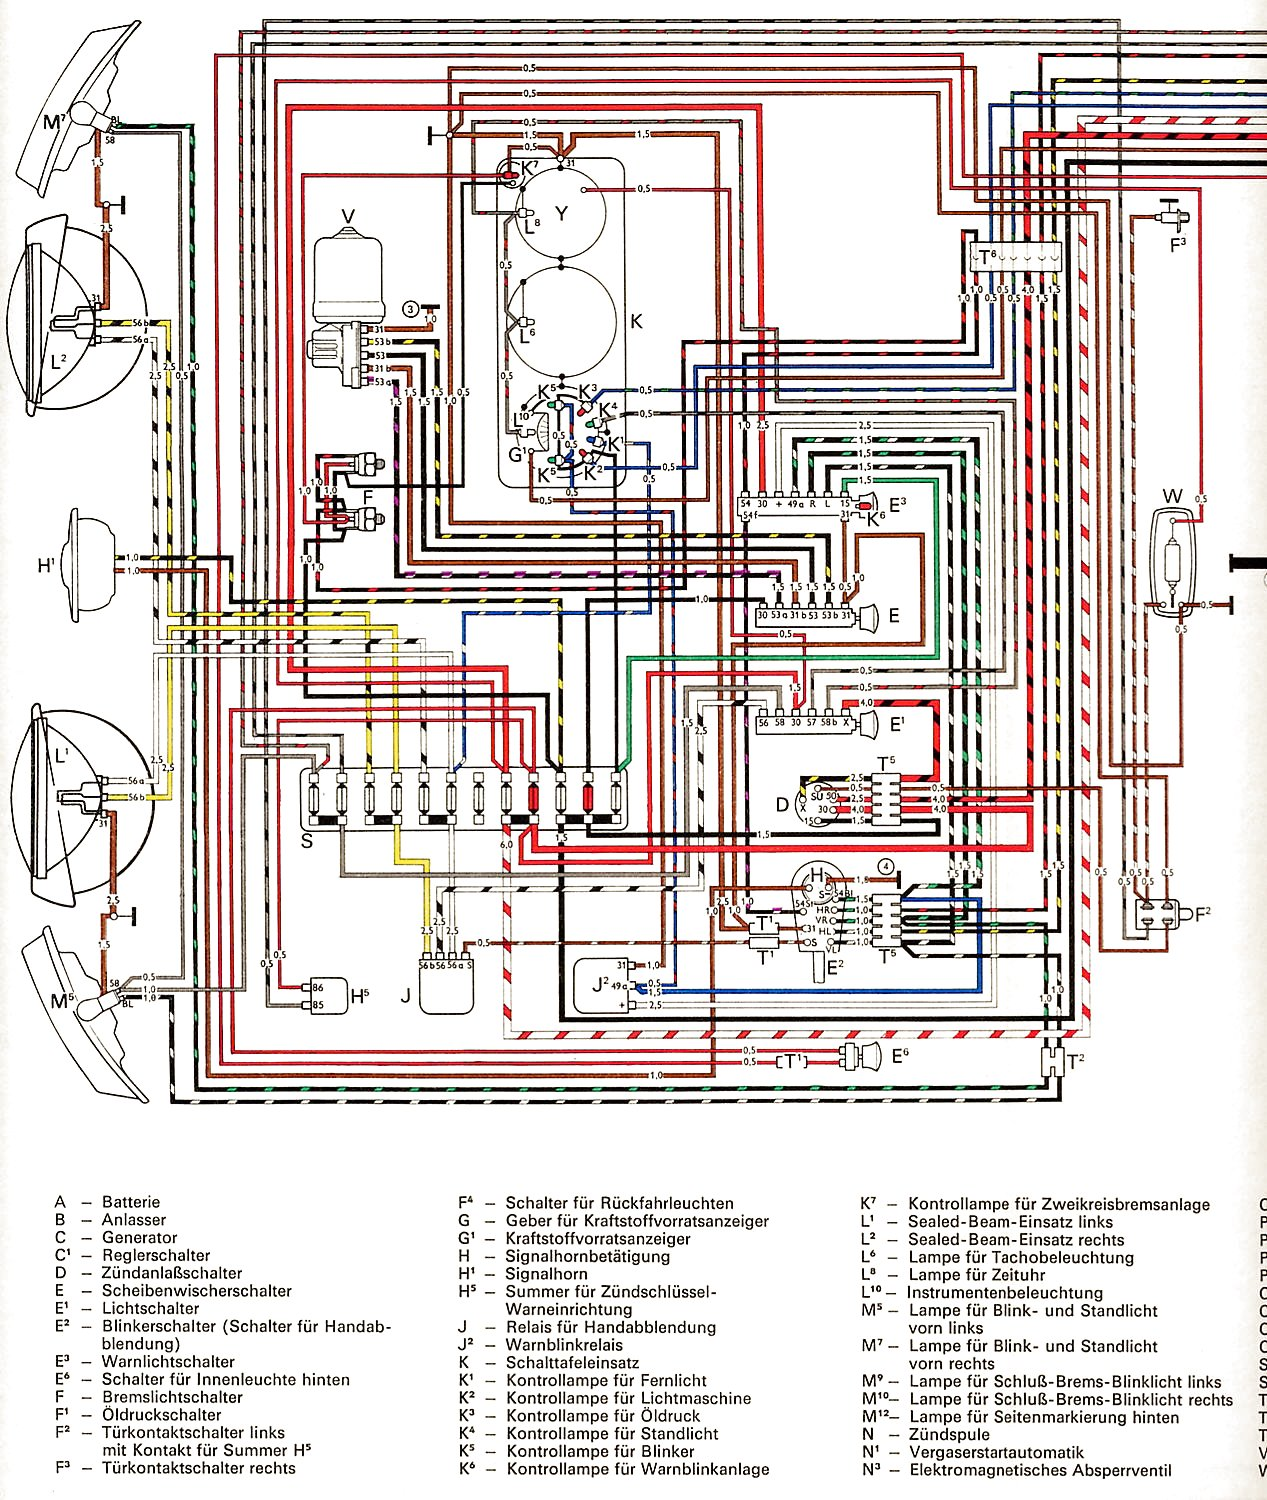 Transporter_USA_from_August_1970 1 77 beetle wiring diagram 1974 vw super beetle wiring diagram 1957 vw beetle wiring diagram at bayanpartner.co